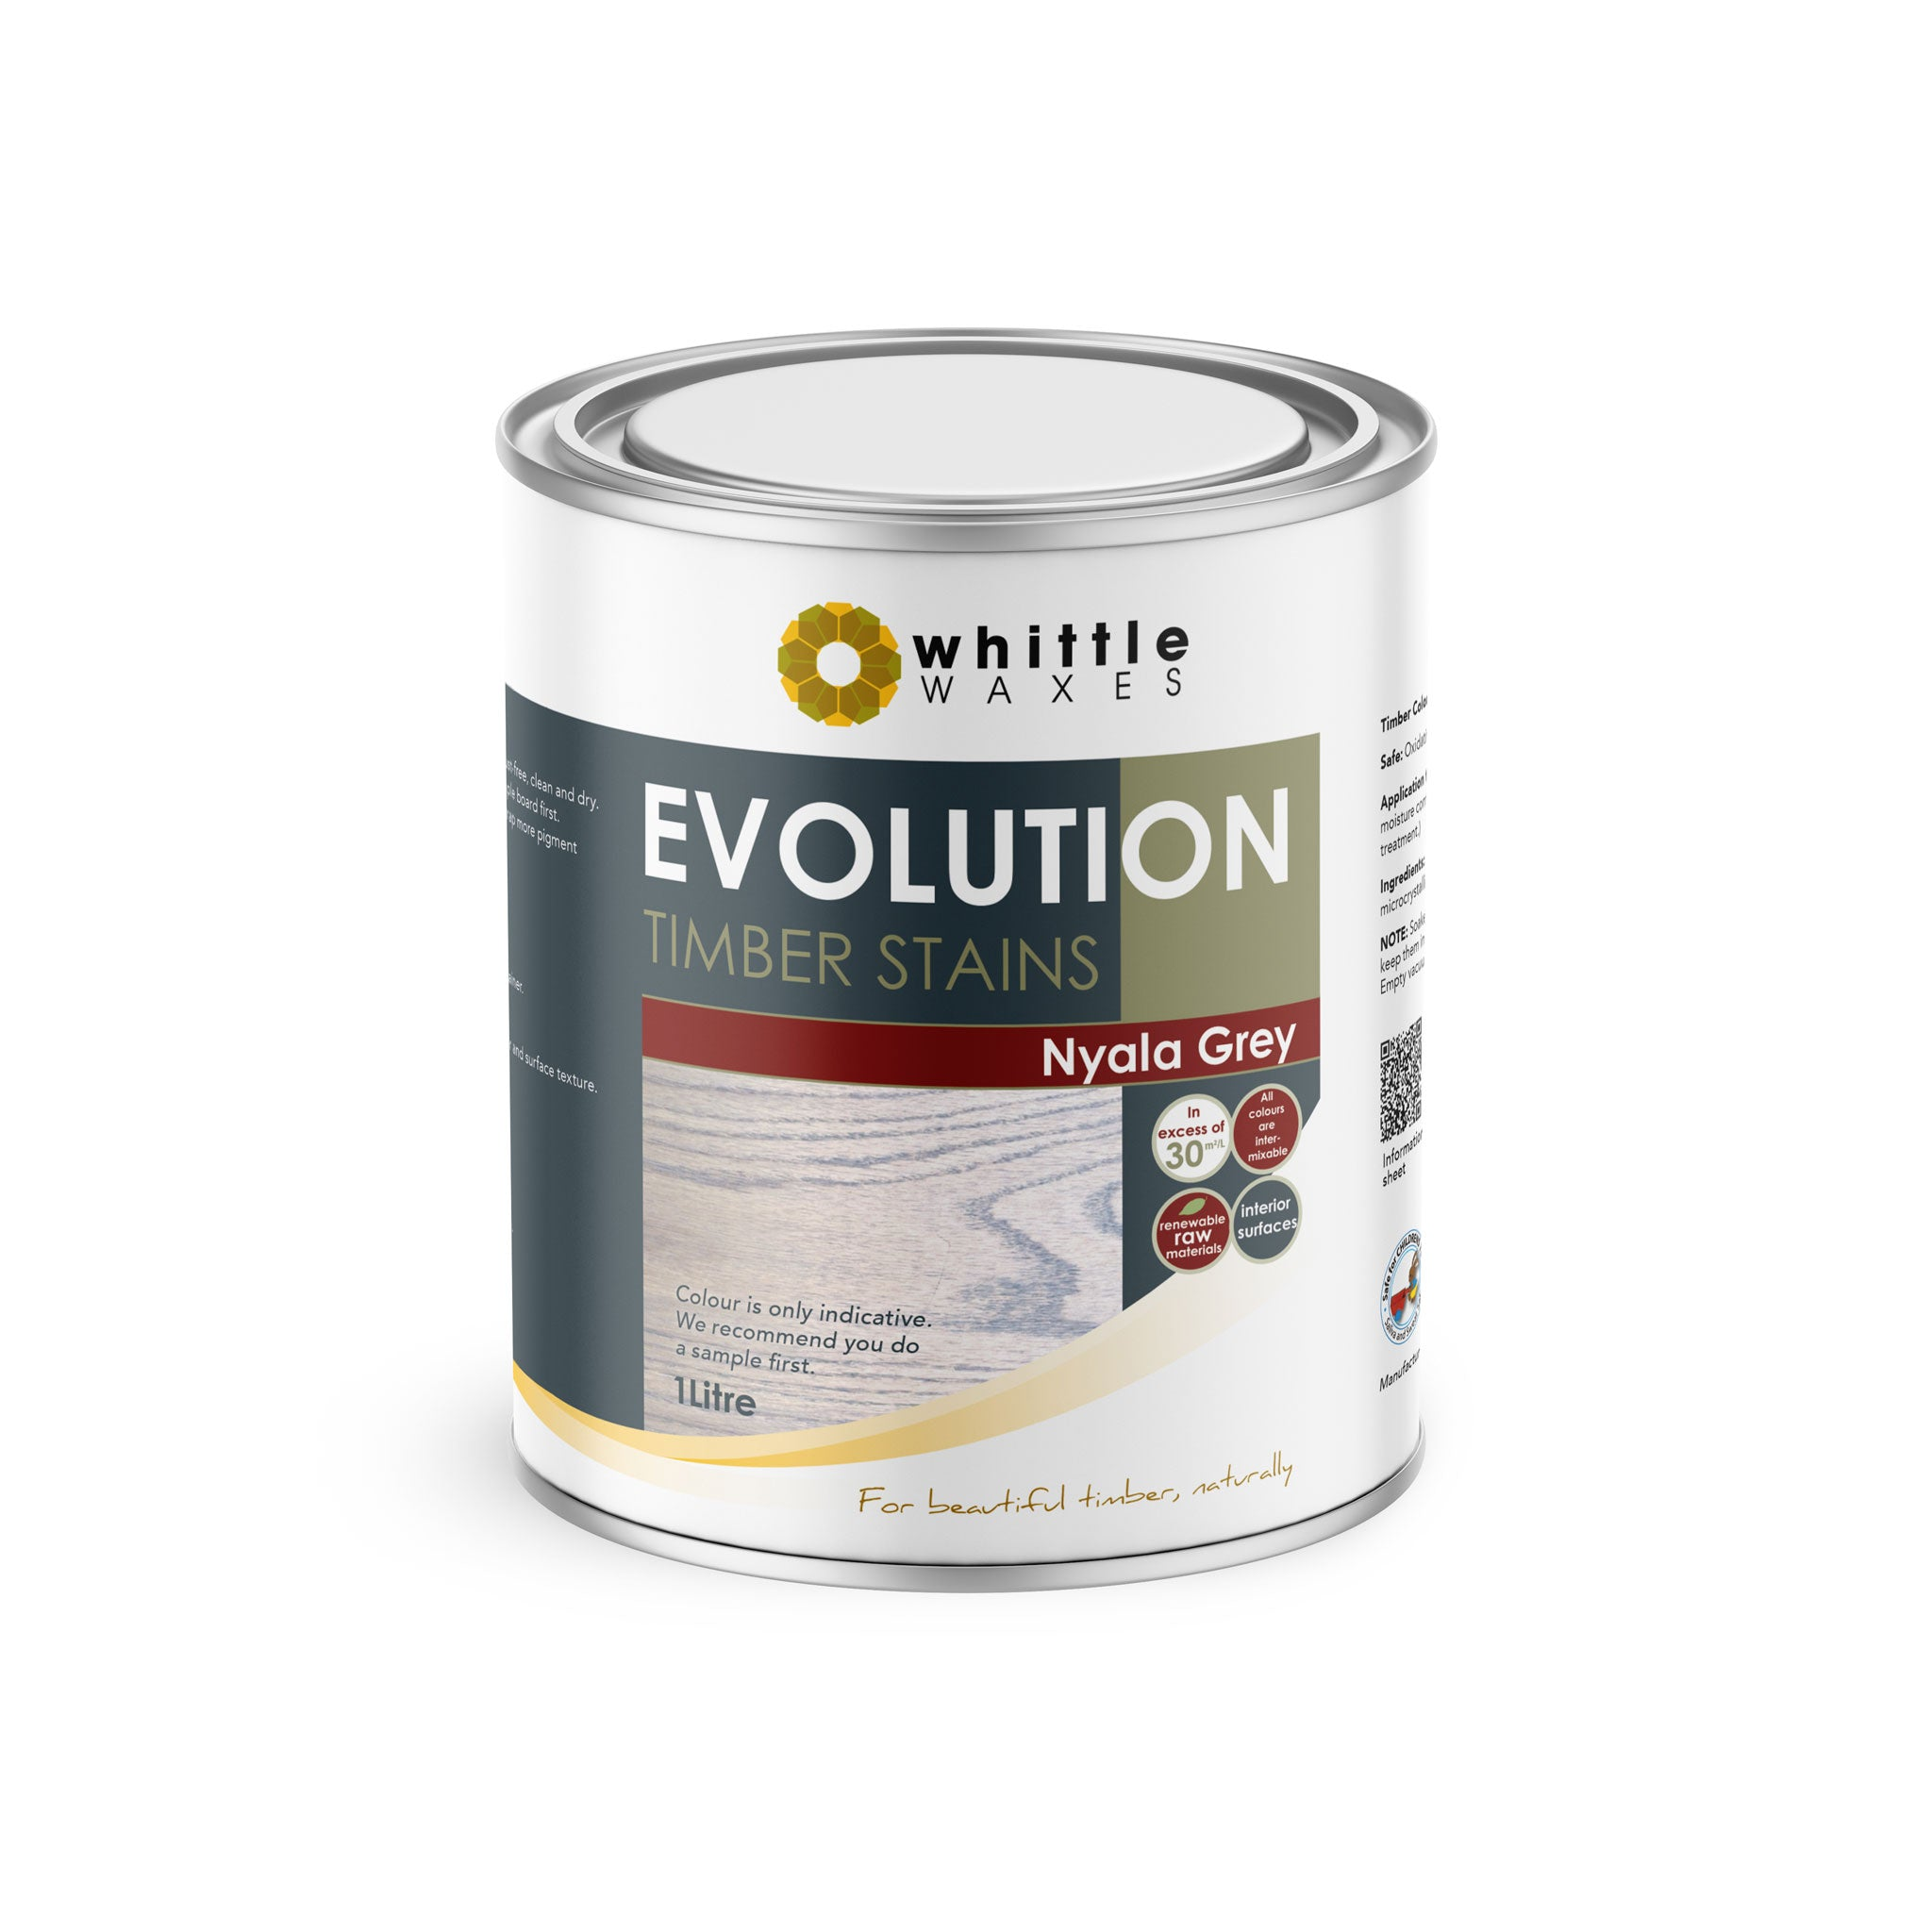 Whittle Waxes Evolution Colours (Nyala Grey) - quality timber stain - 1 Litre